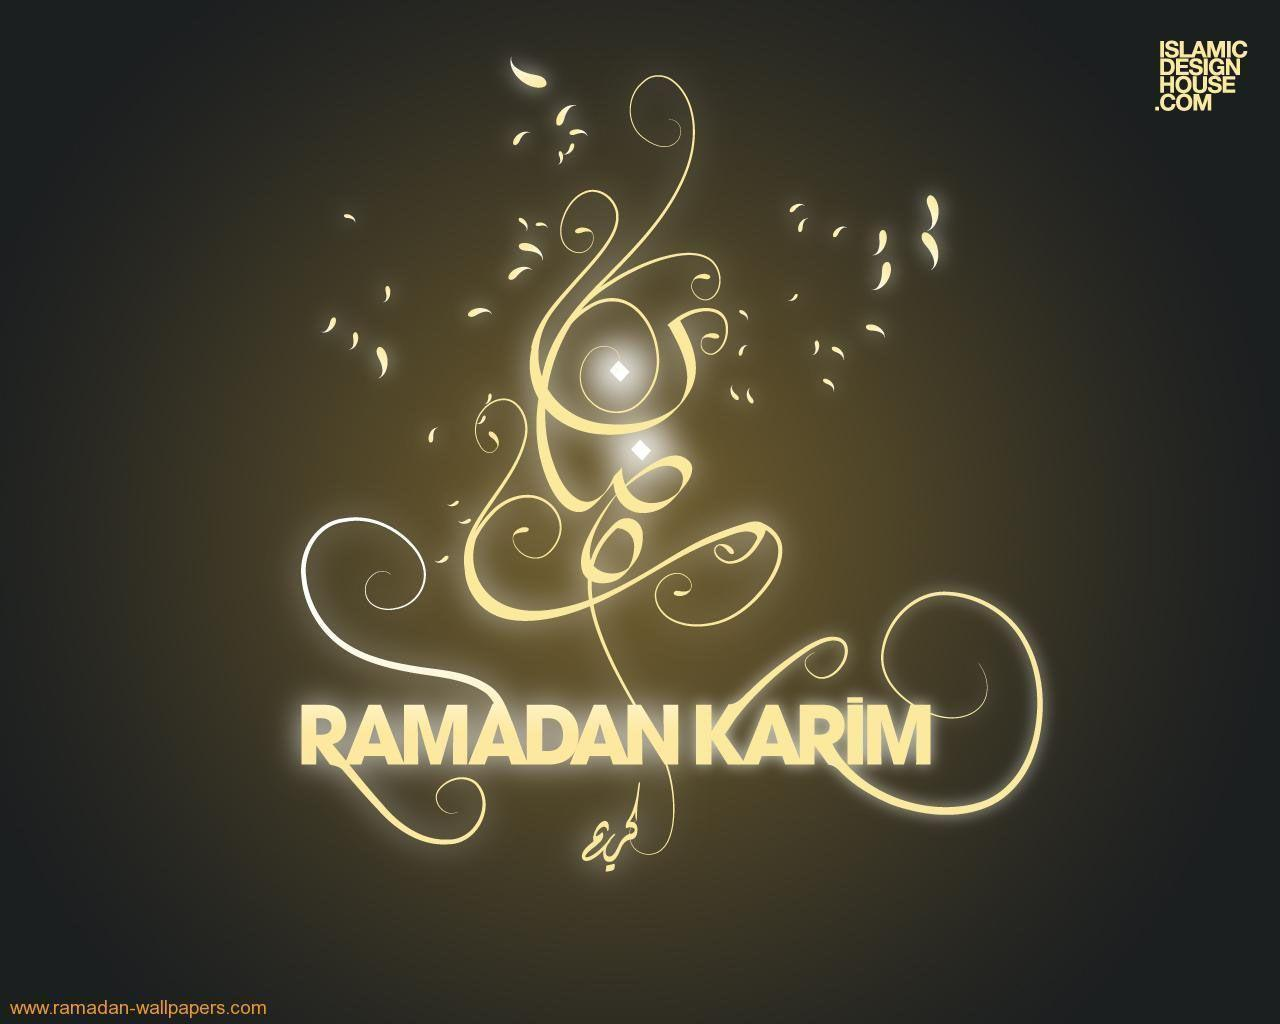 Hd wallpaper ramzan mubarak - Images For Ramadan Mubarak In Arabic Text